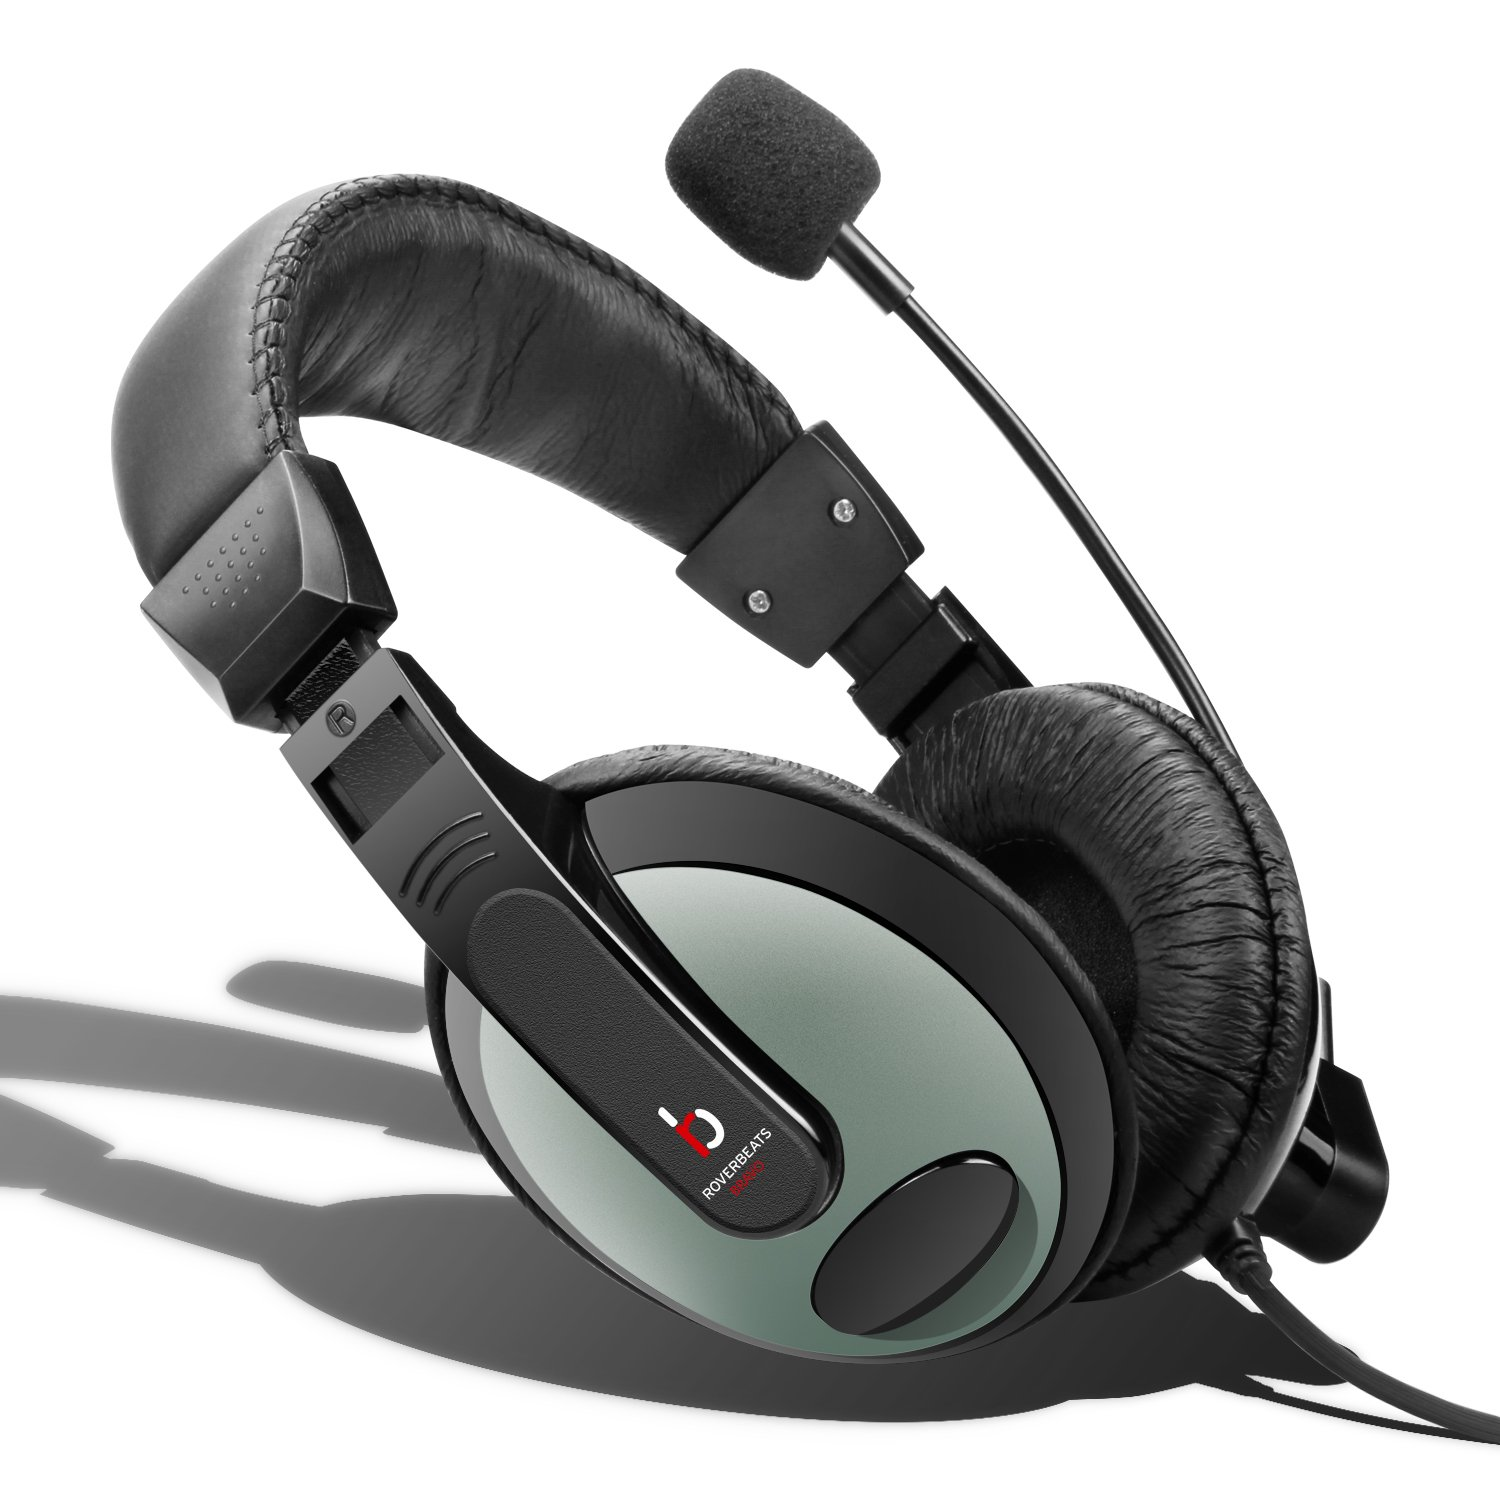 Etekcity Gaming Headsets are basic but garner good reviews